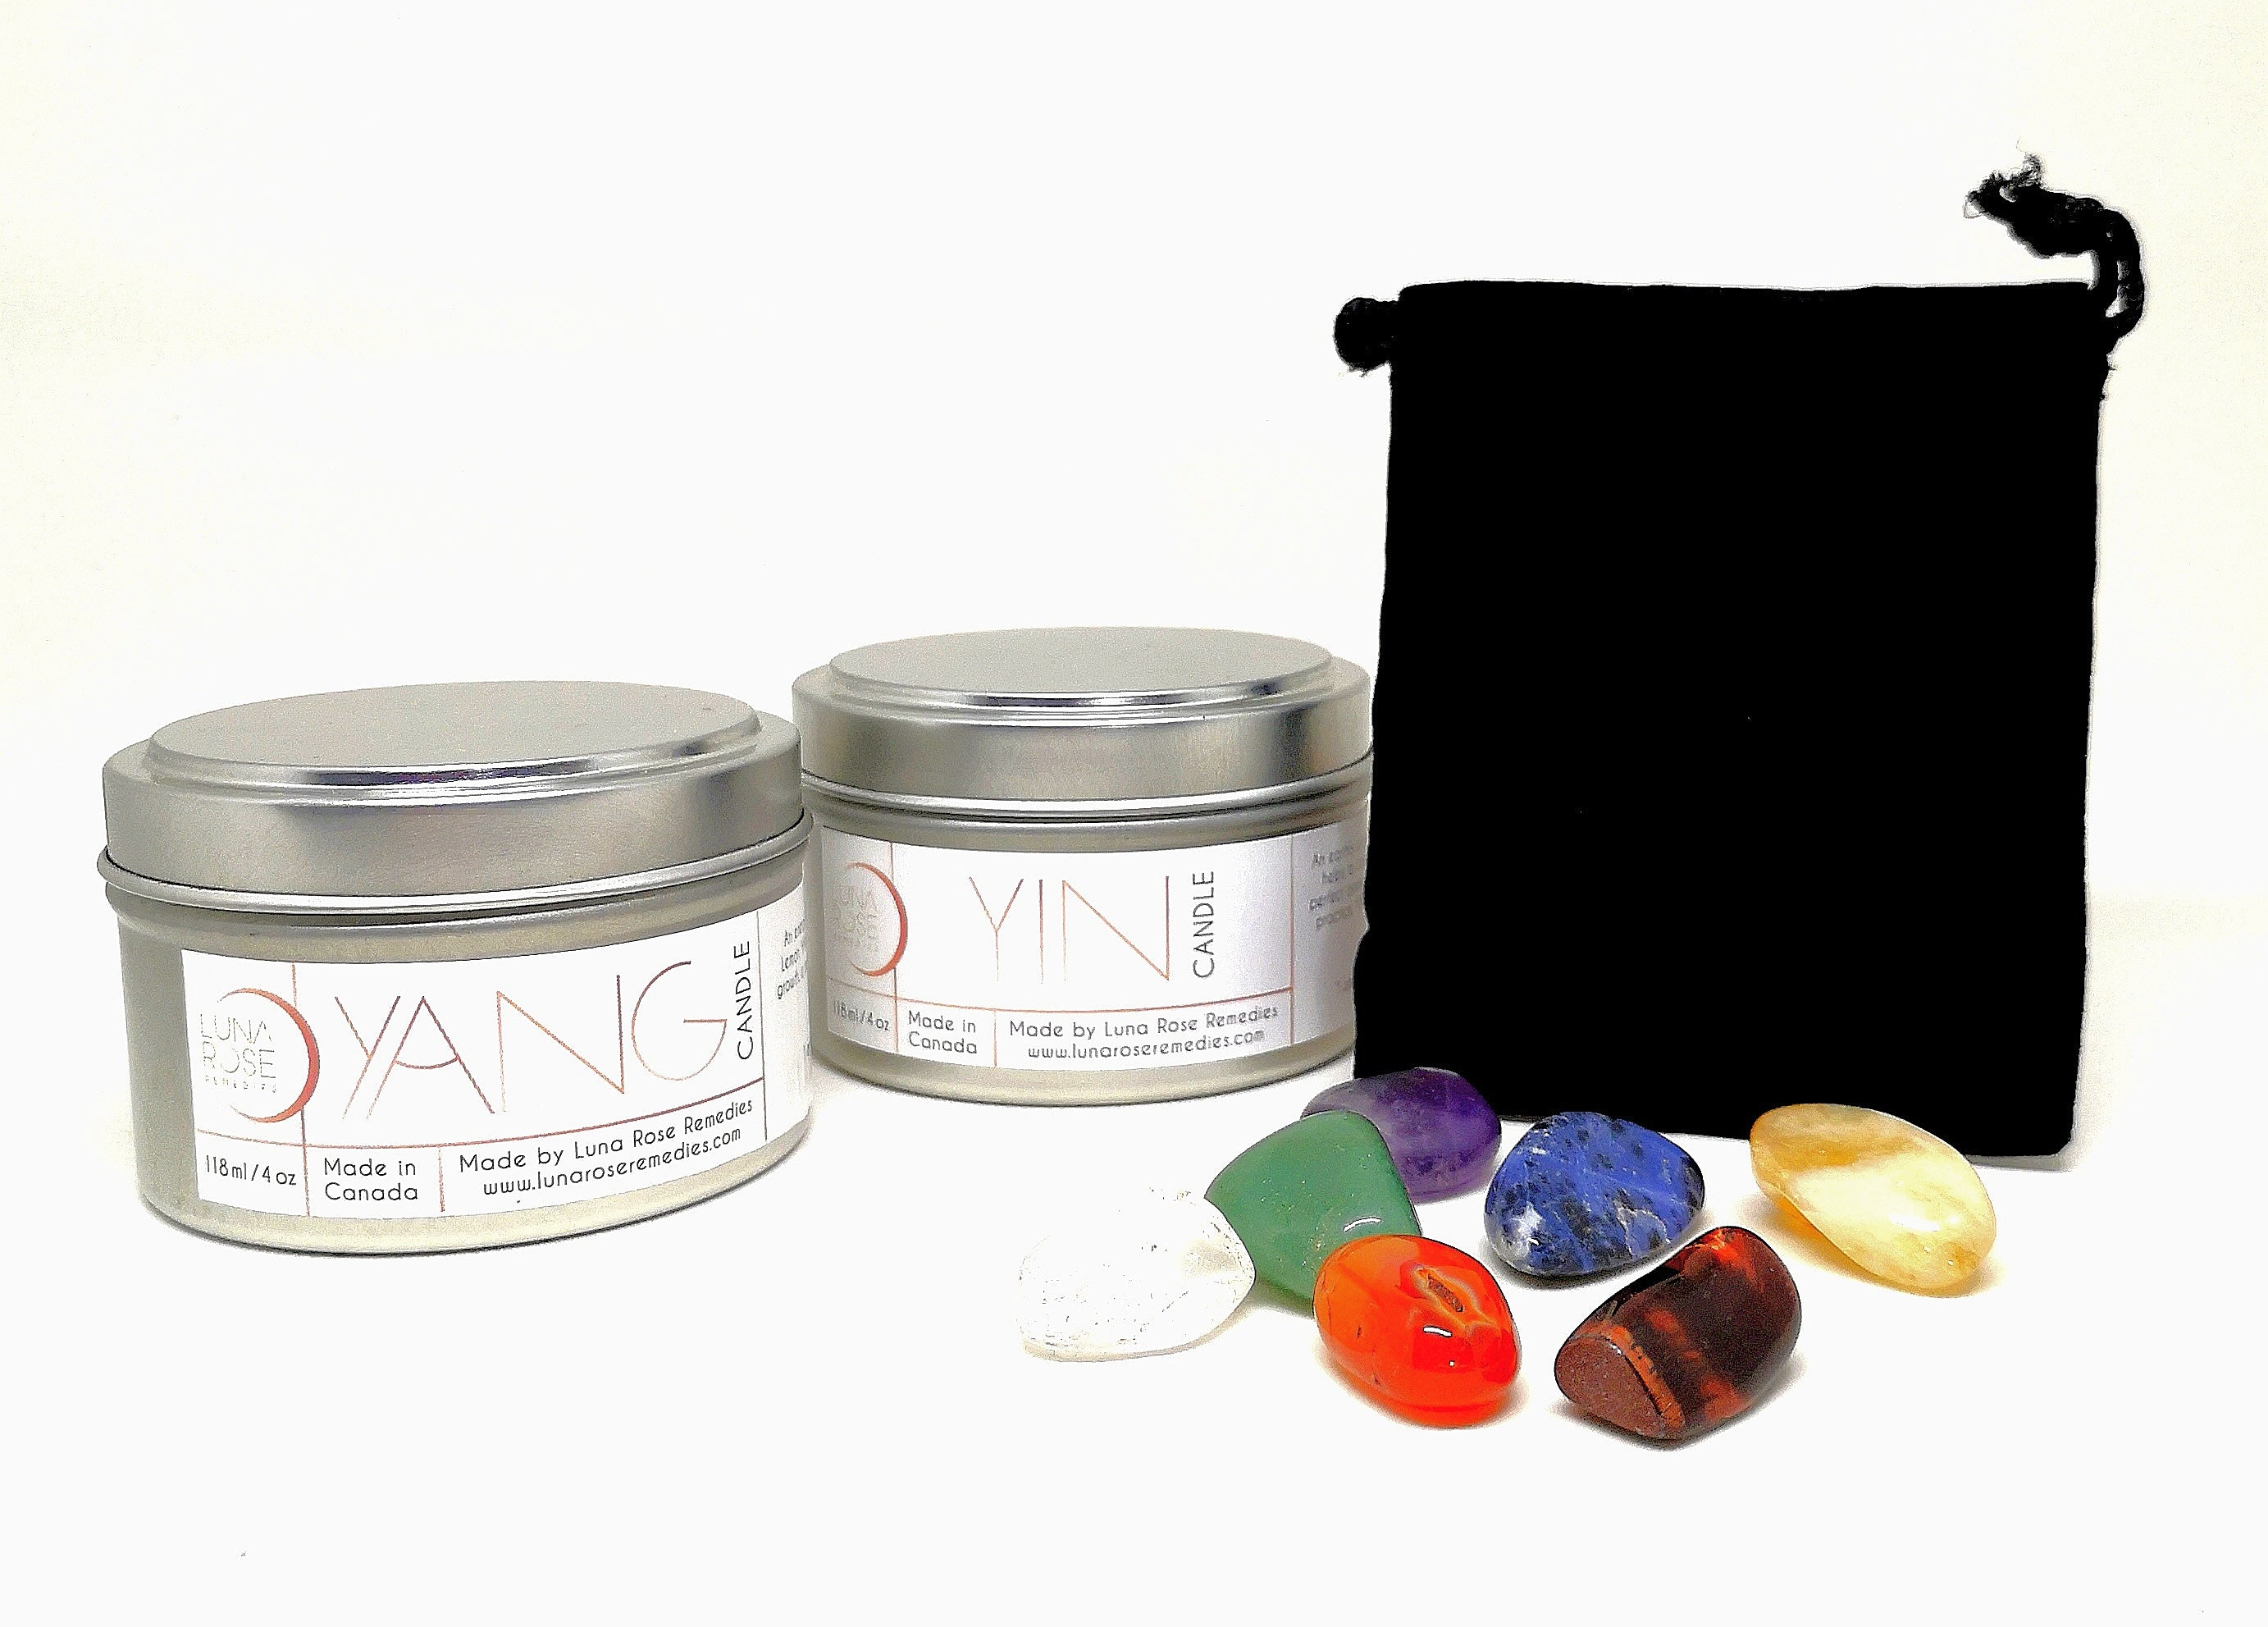 YIN & Yang Essential Oil Candle Gift Set - Luna Rose Remedies